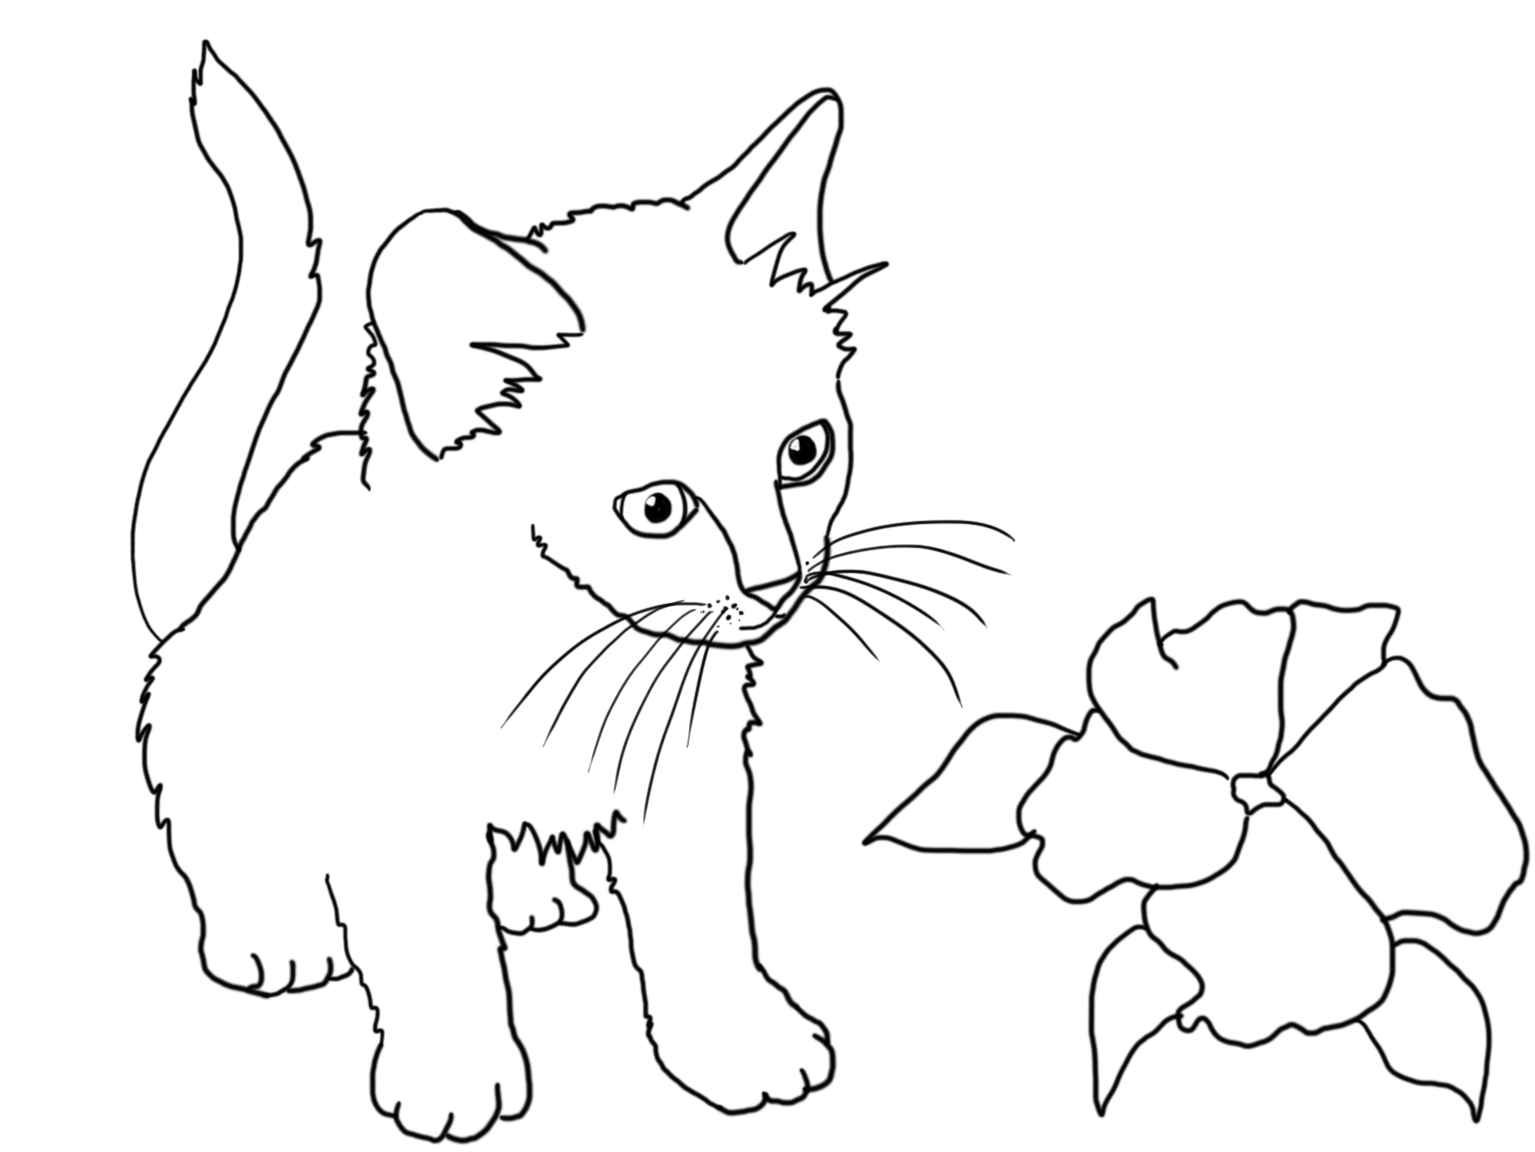 kitten coloring cat coloring pages kitten coloring 1 1